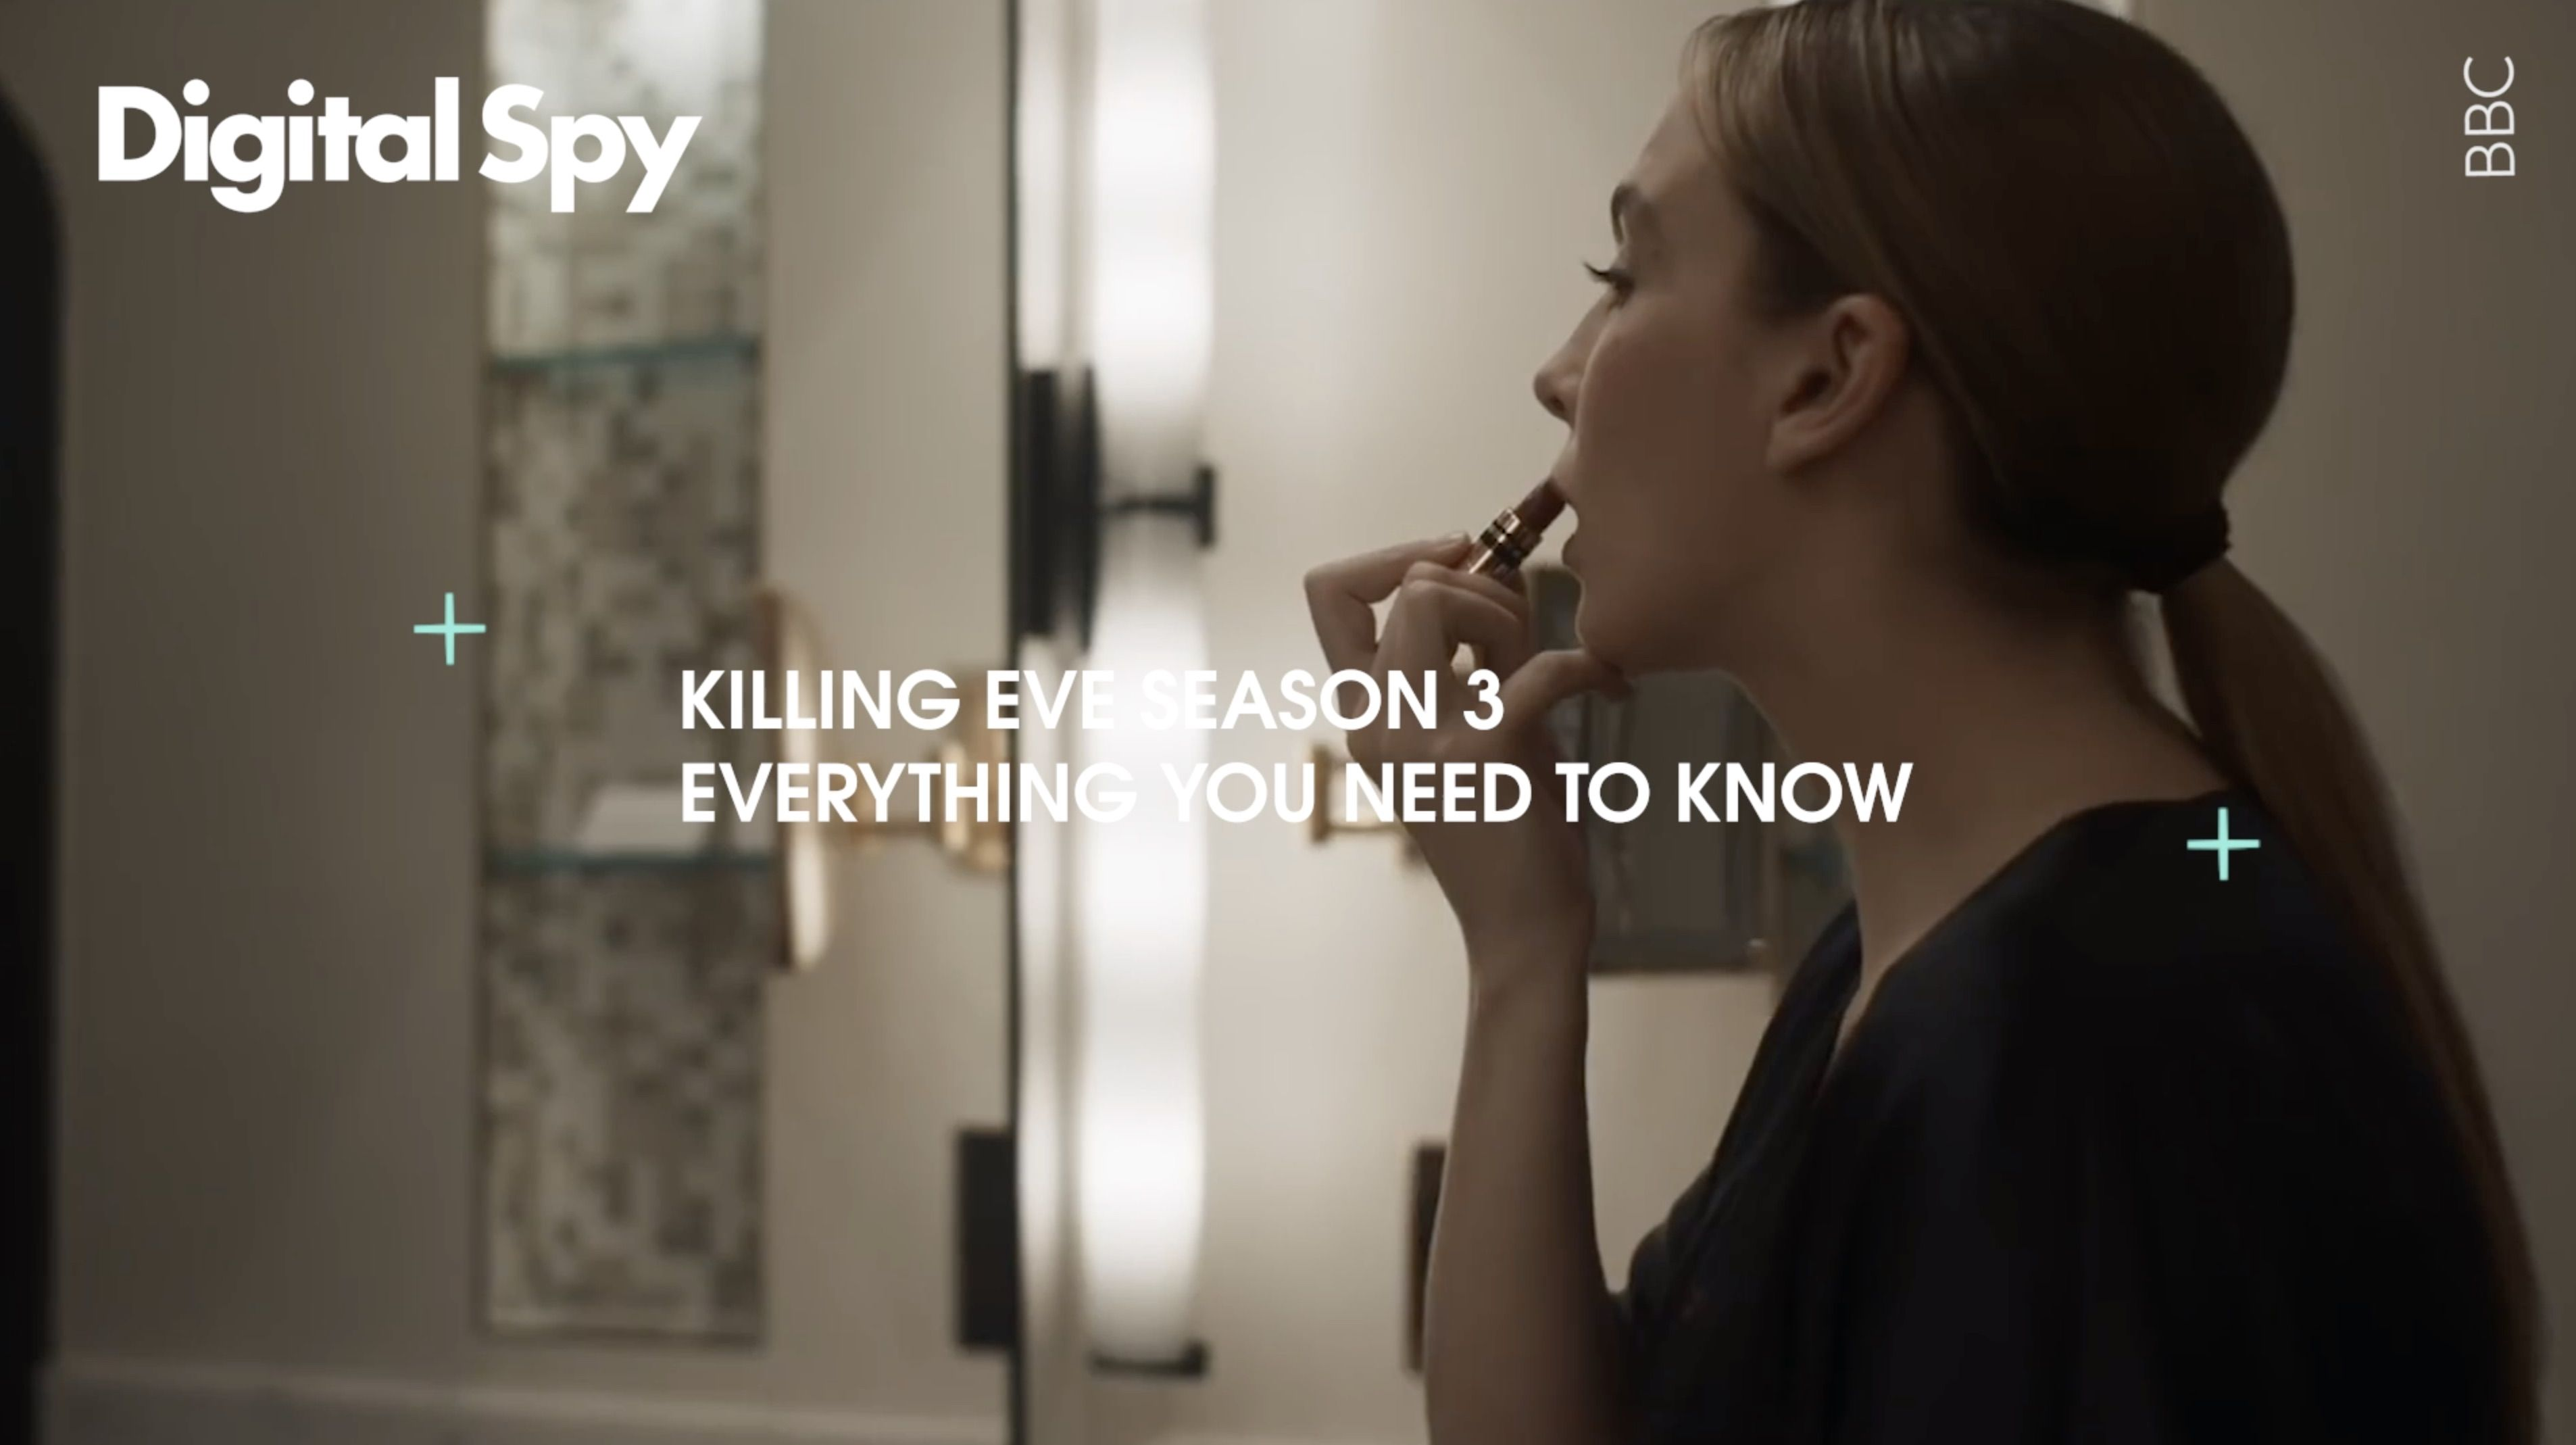 Killing Eve season 3: Everything you need to know